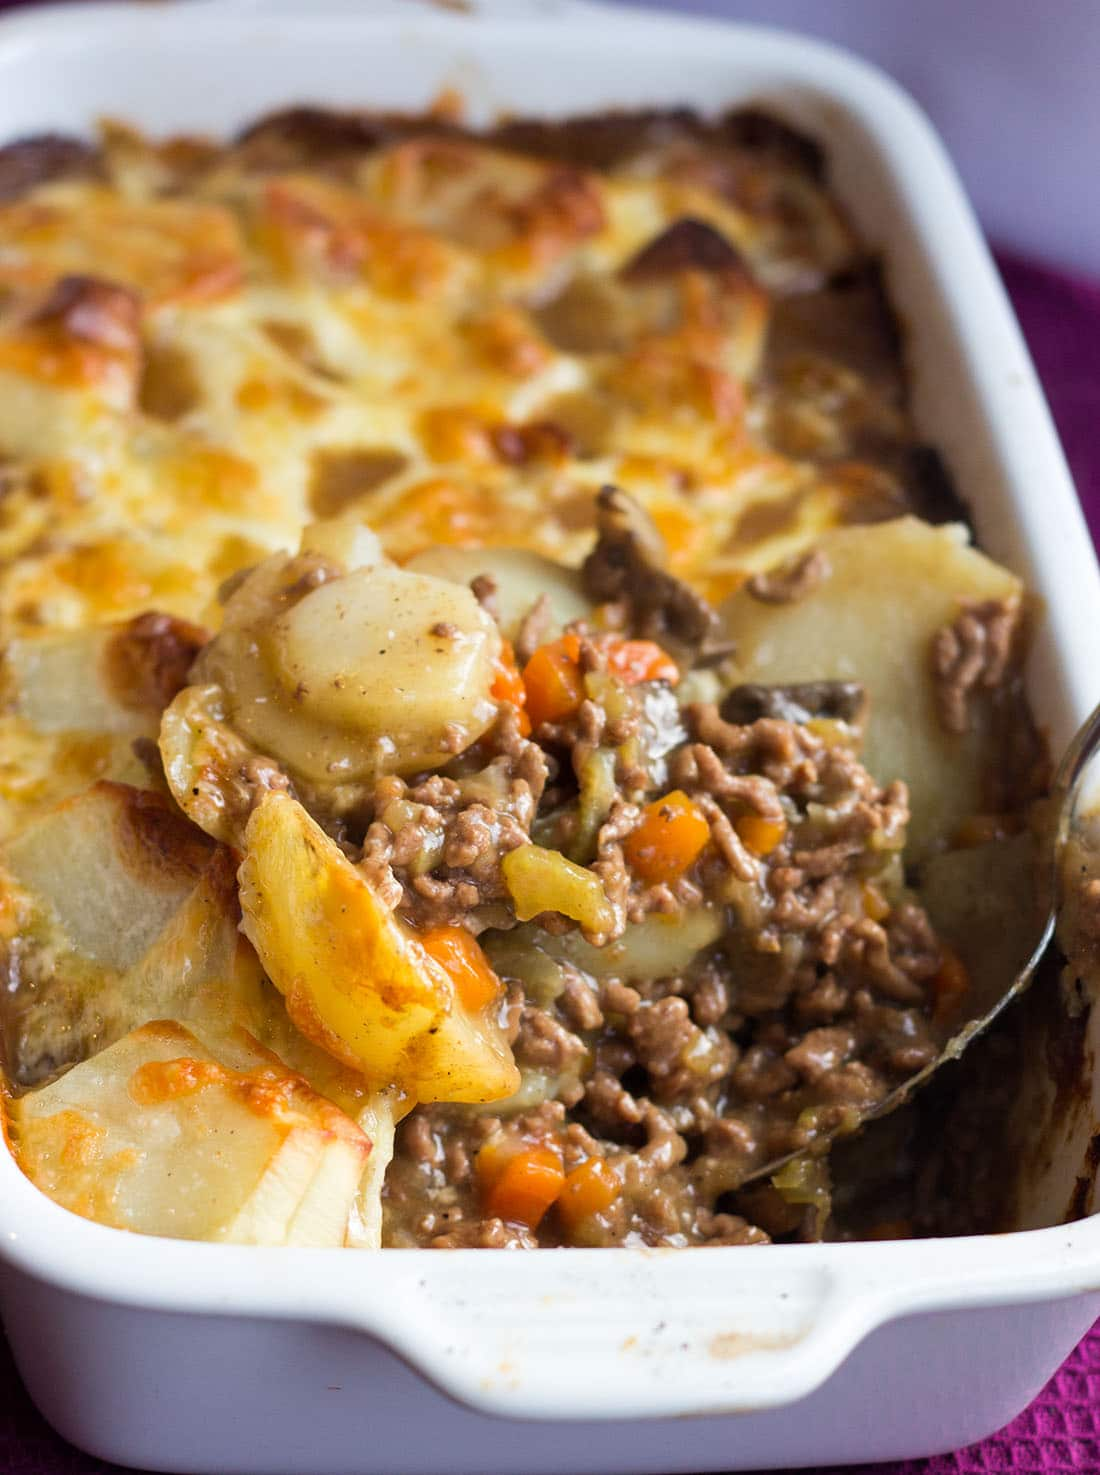 This recipe for Cottage Pie with a spoonful being taken out.